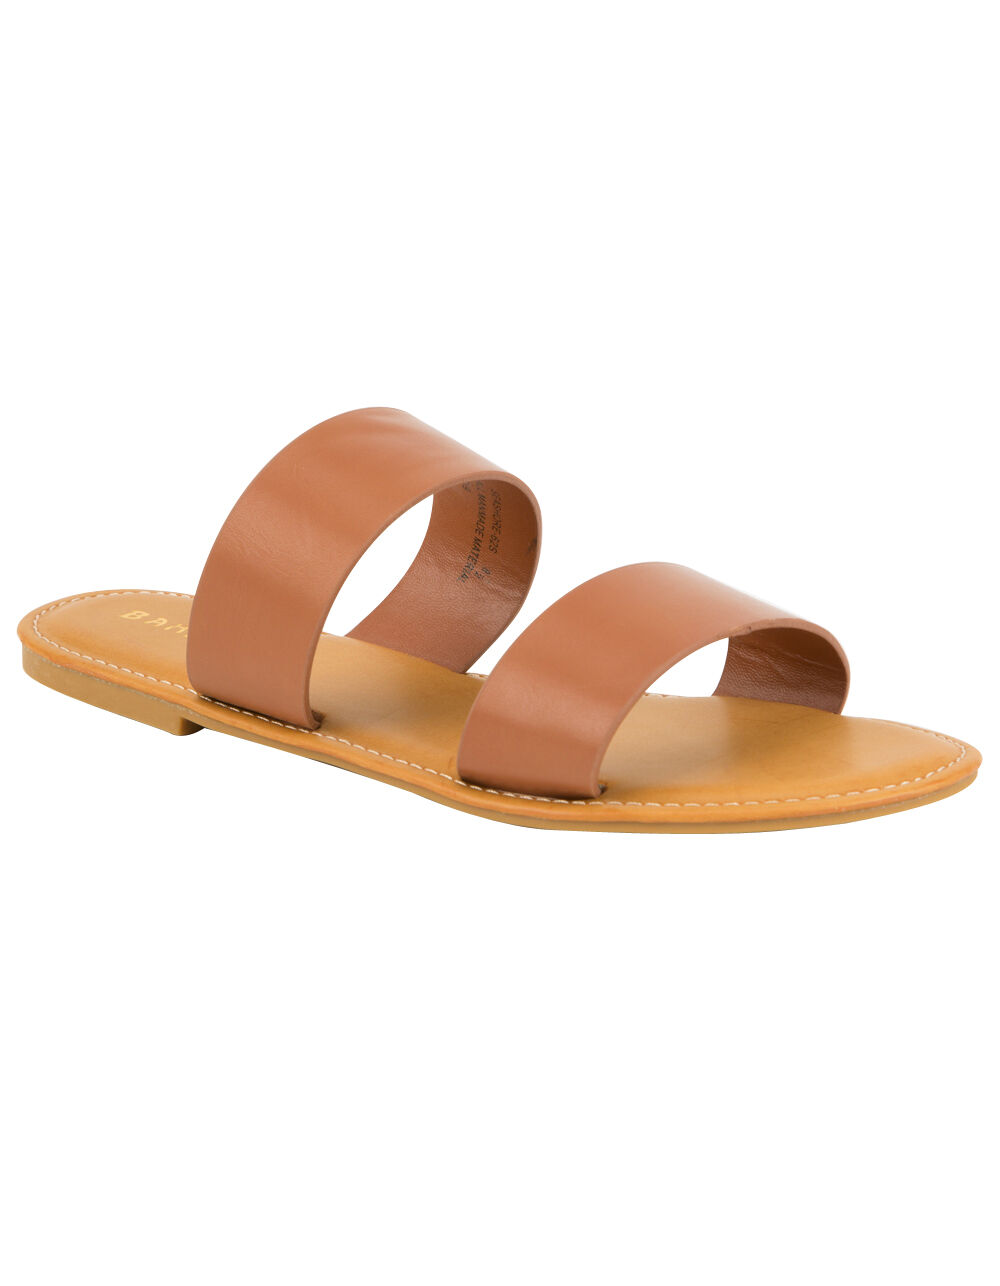 BAMBOO DOUBLE STRAP SANDALS